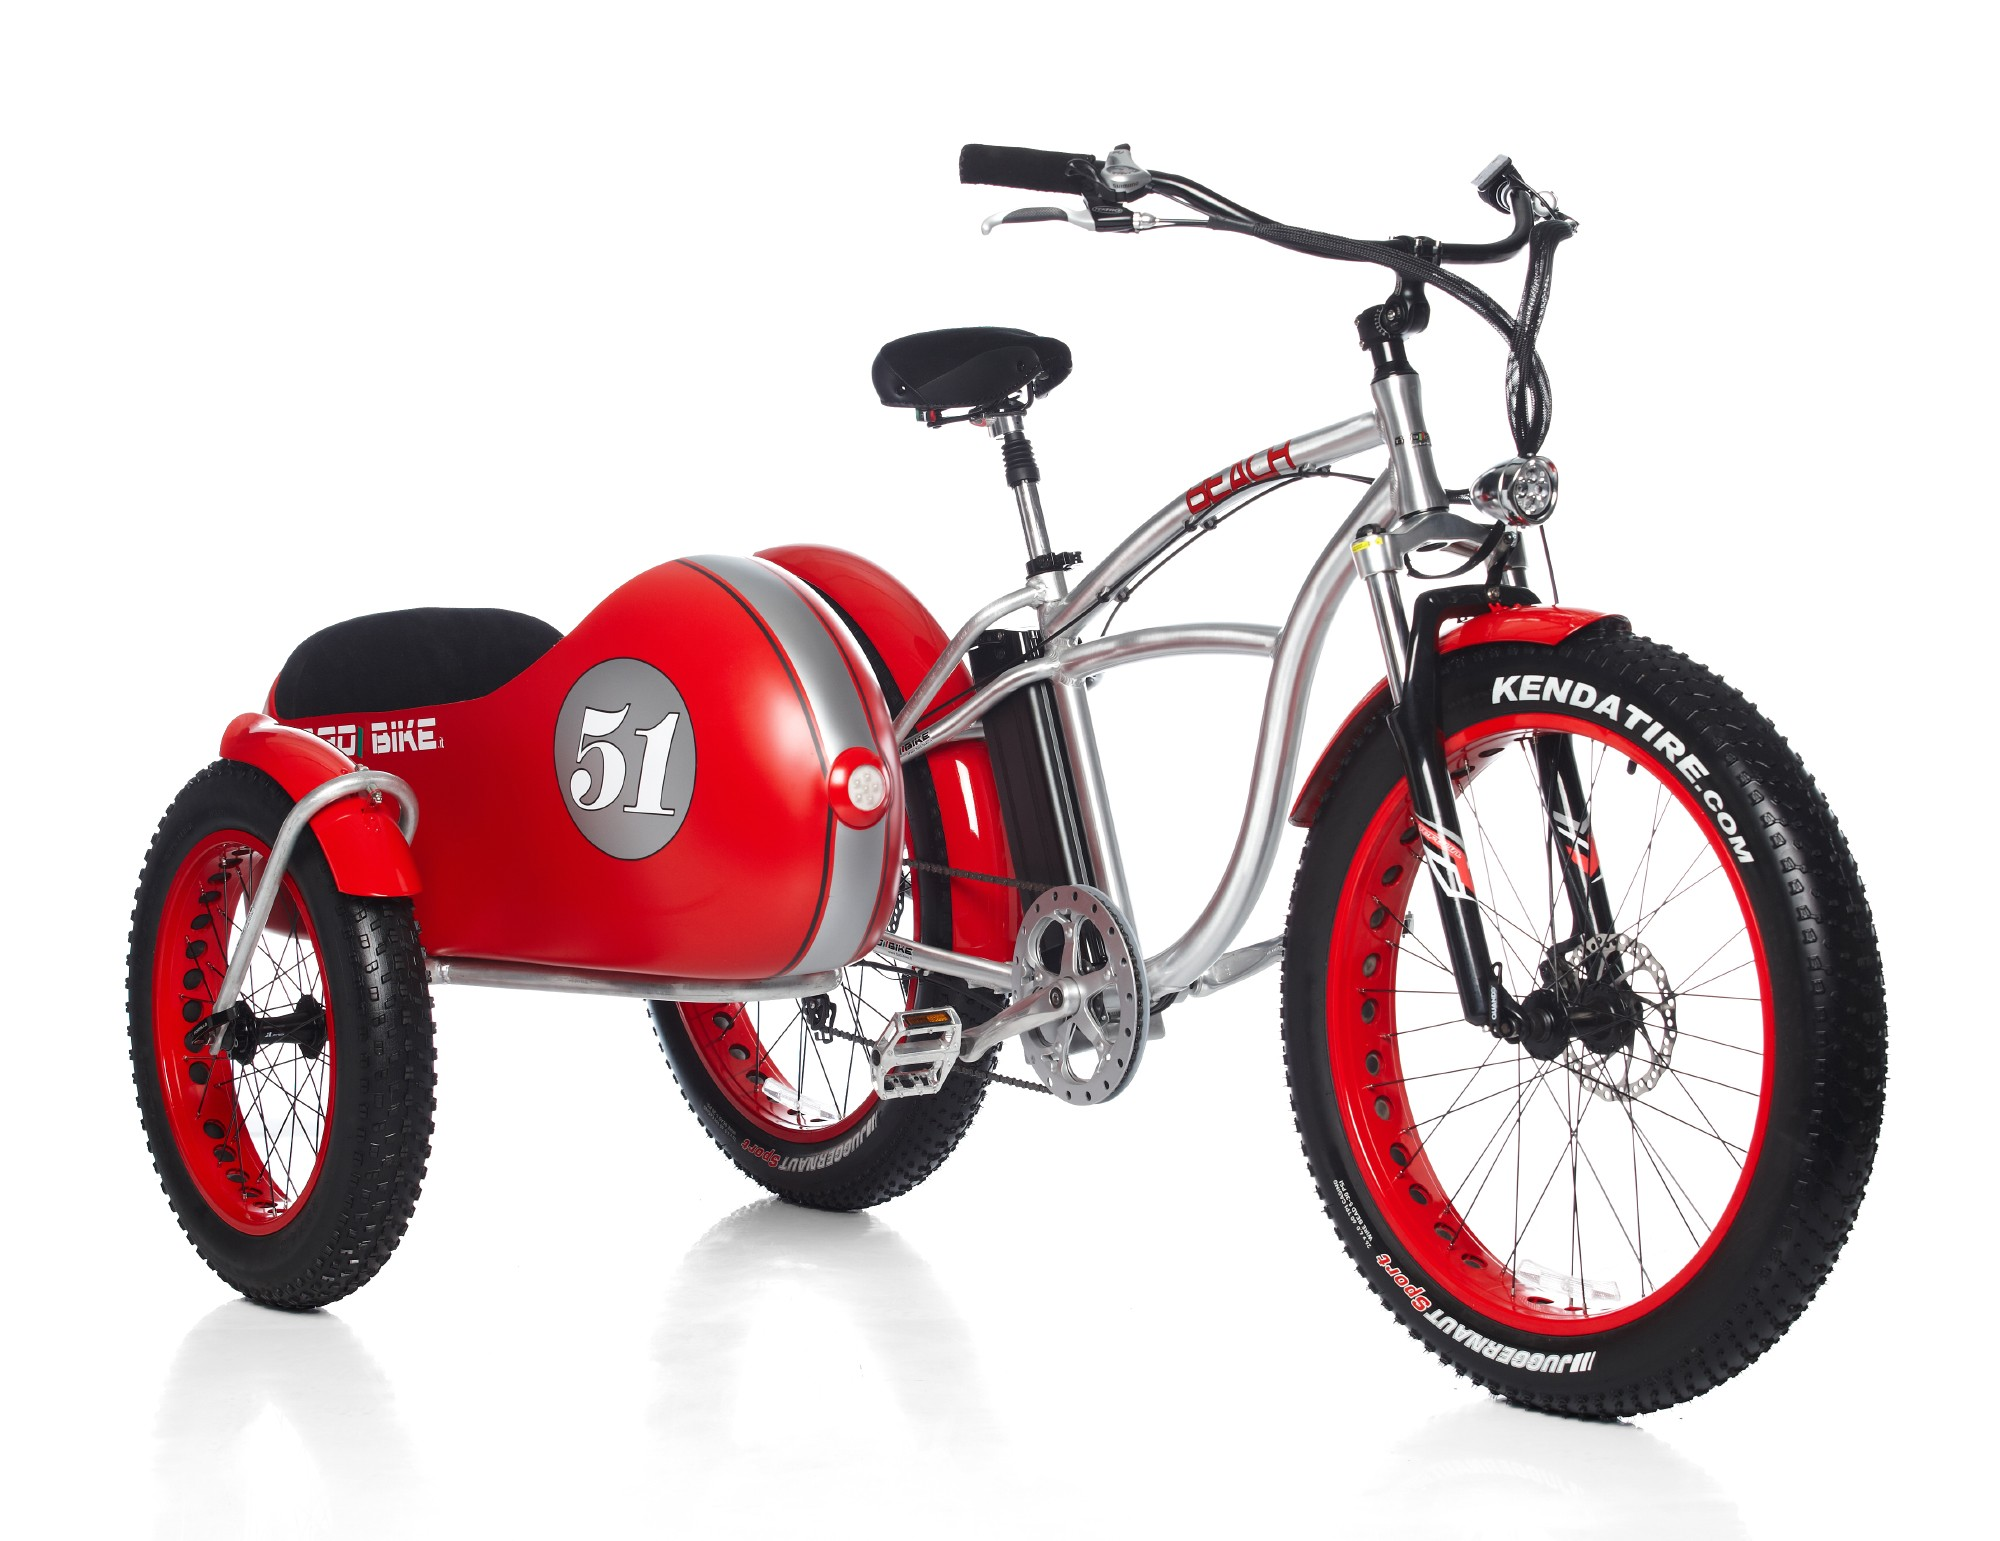 Bad Bike Beach Vintage Fat the Electric Sidecar Bicycle